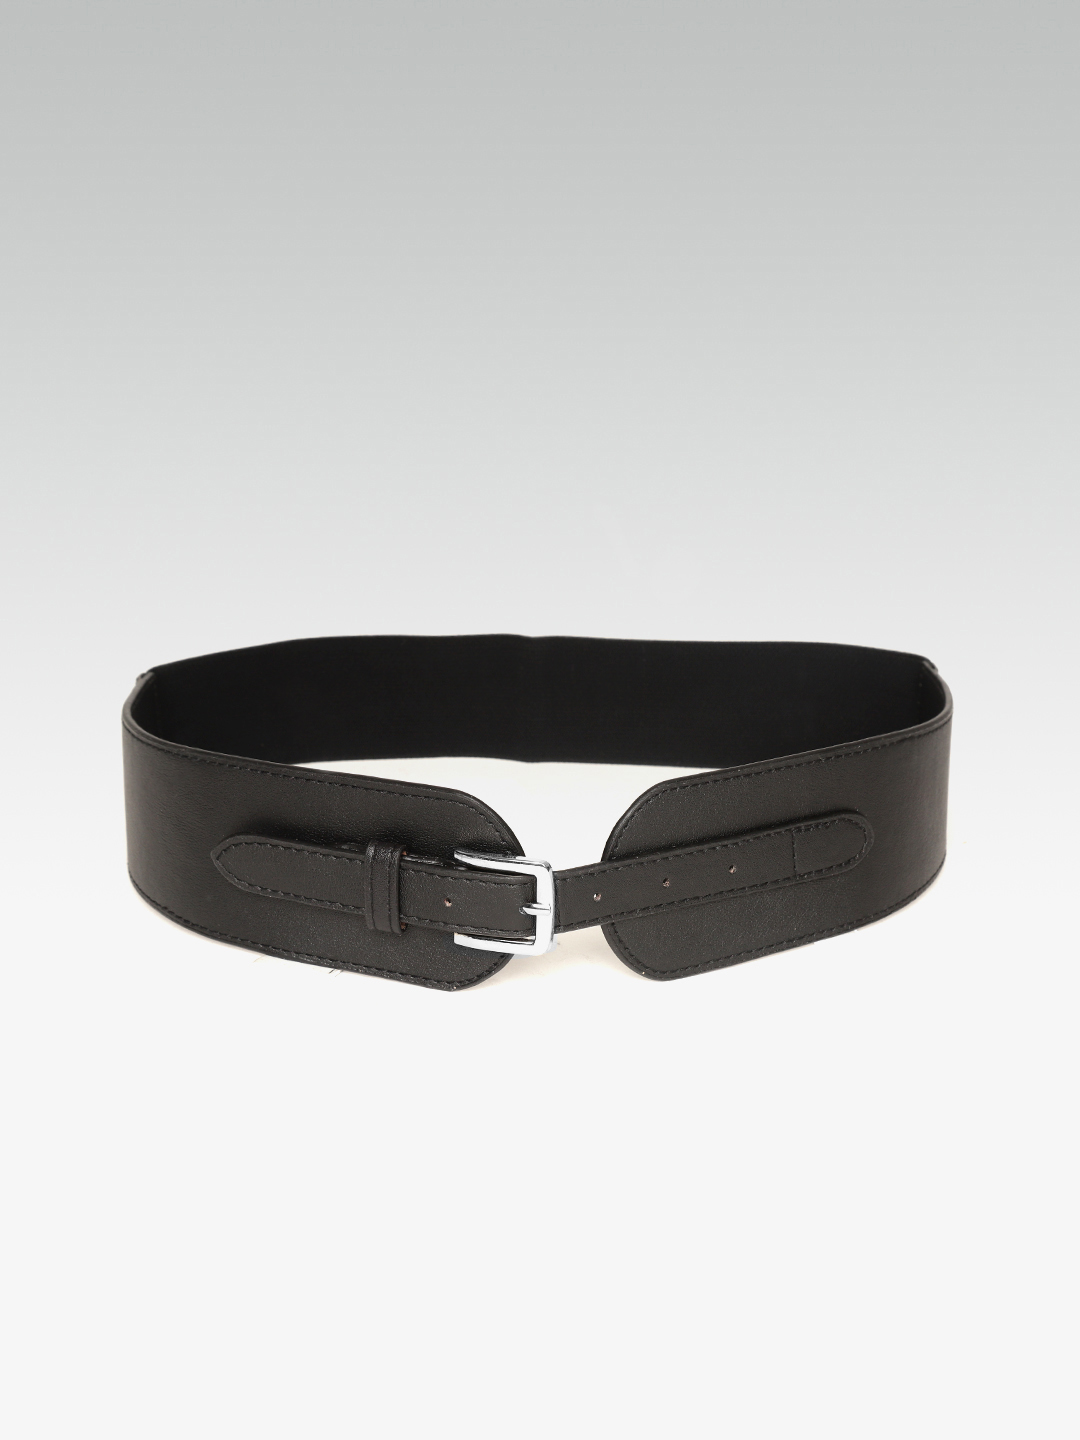 Belts-The Sassy Stride Black Waist Belt3